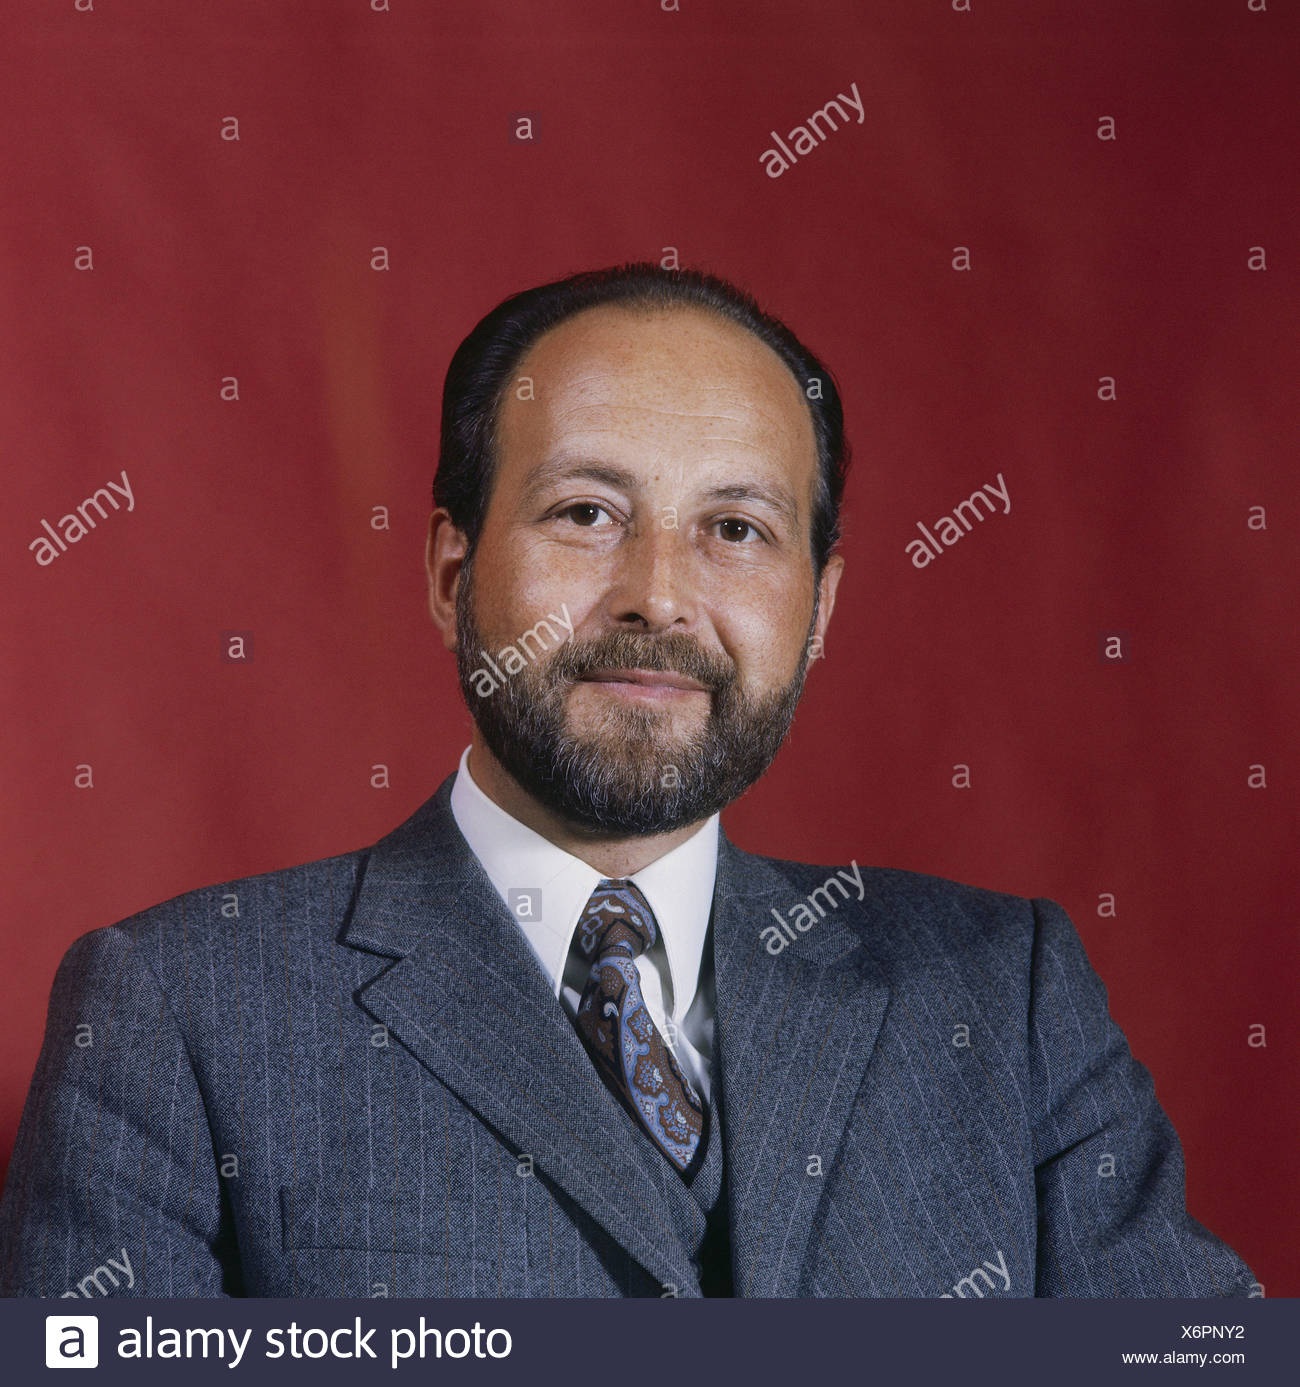 Engelhard, Hans Arnold, 16.9.1934 - 11.3.2008, German politician (FDP), portrait, 1972, Additional-Rights-Clearances-NA - Stock Image